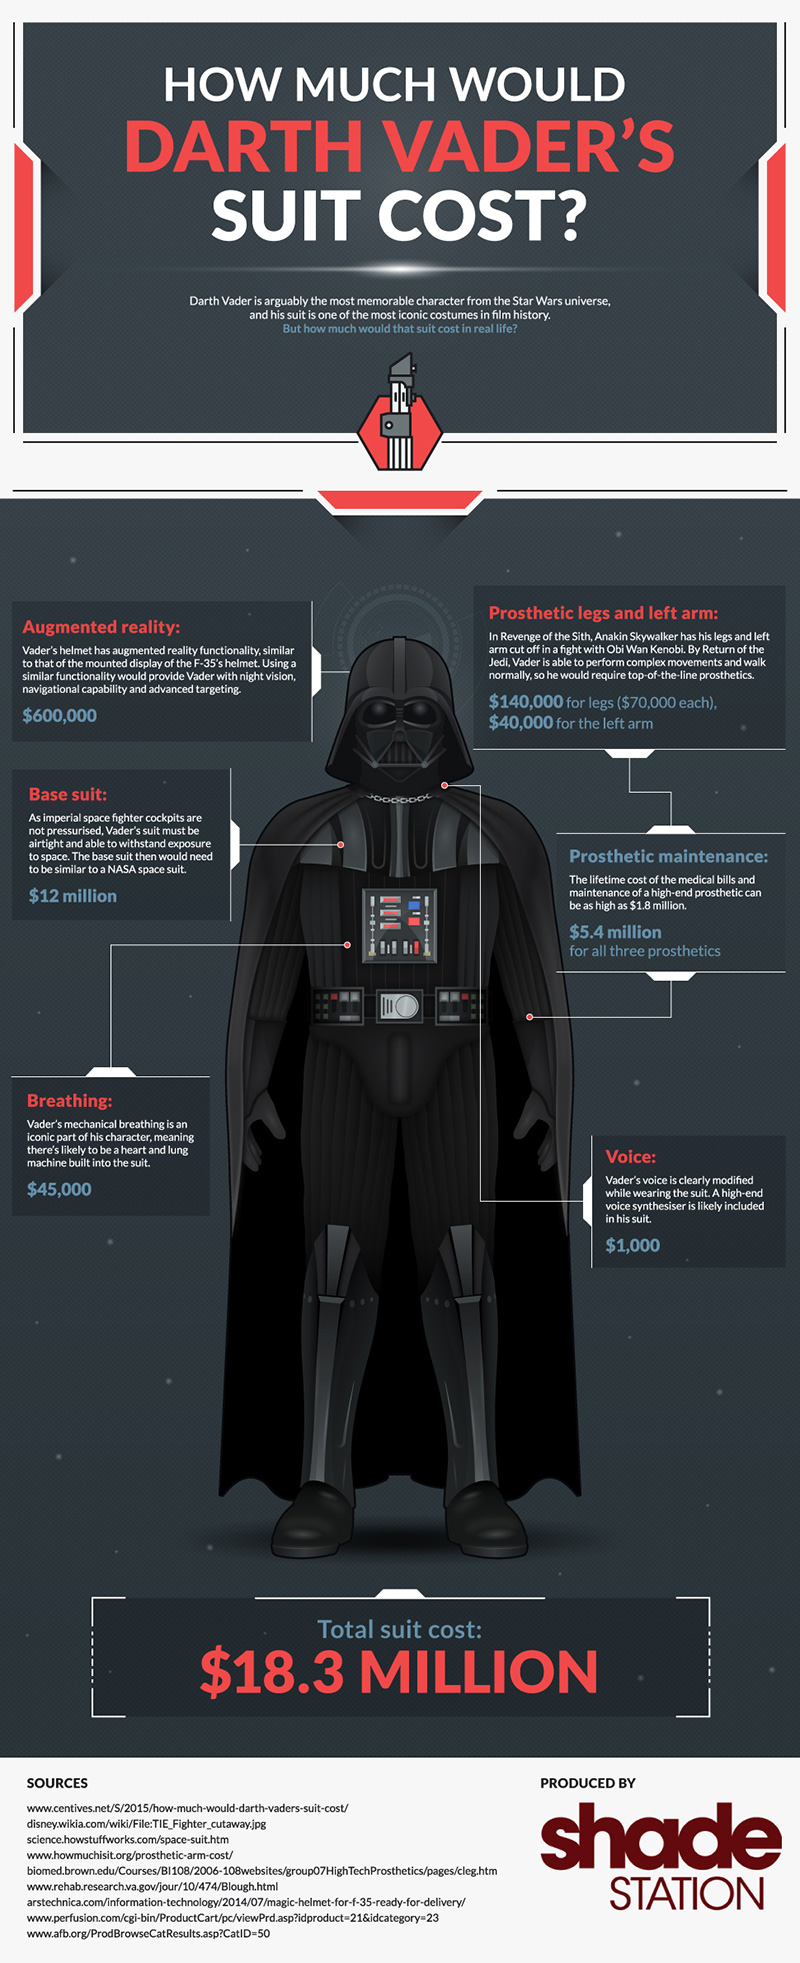 How Much Would Darth Vaders Suit Cost